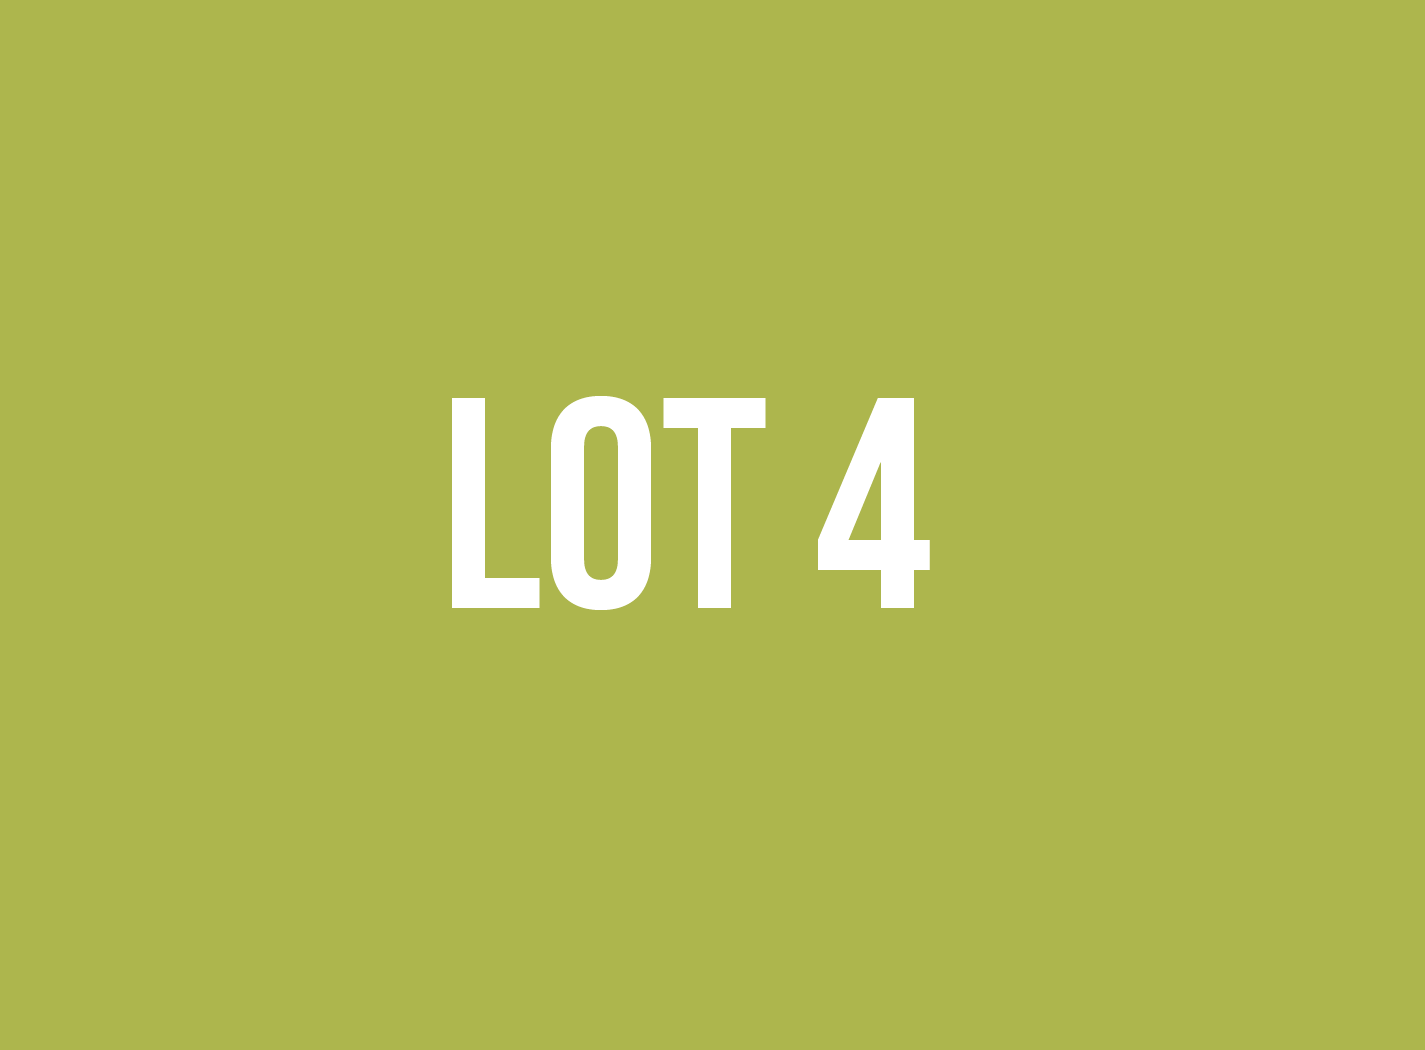 lot4.png